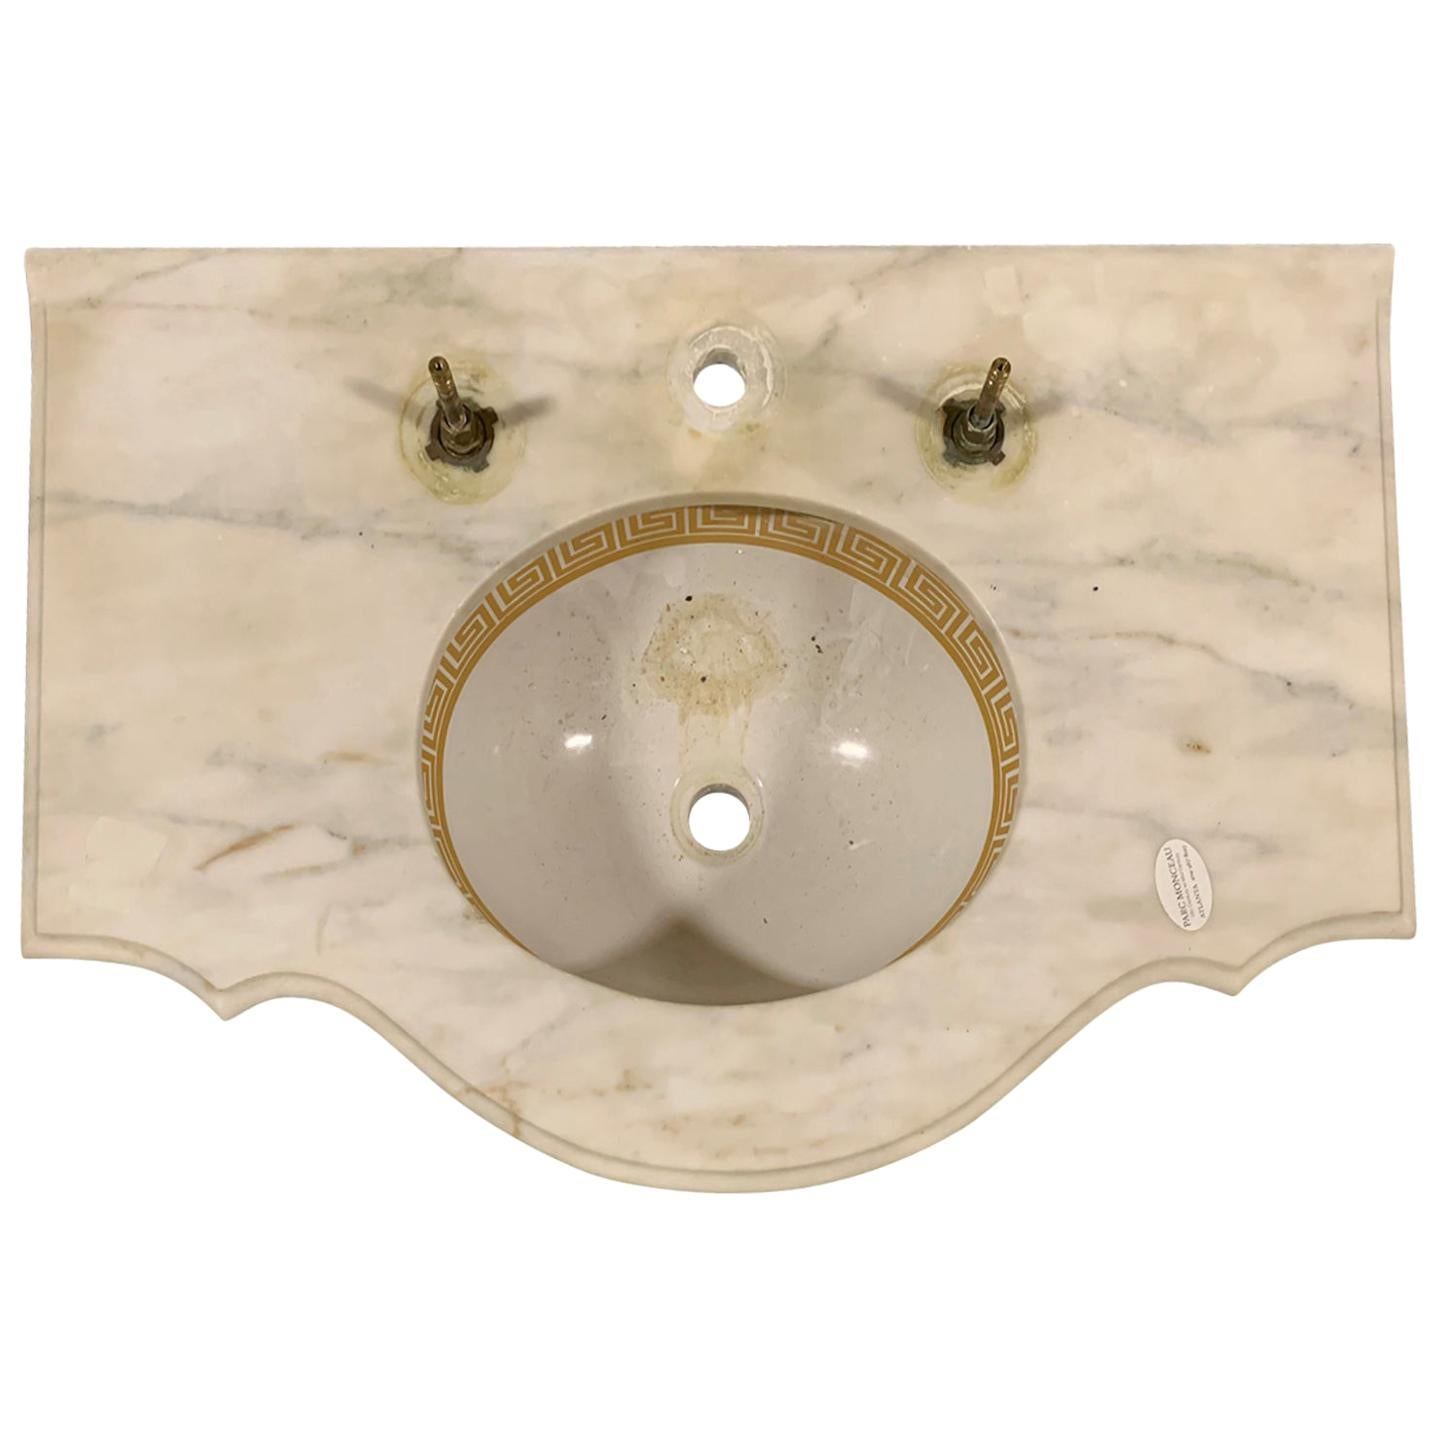 Attributed to Sherle Wagner circa 1960s Marble Sink, Gilt Greek Key Edging